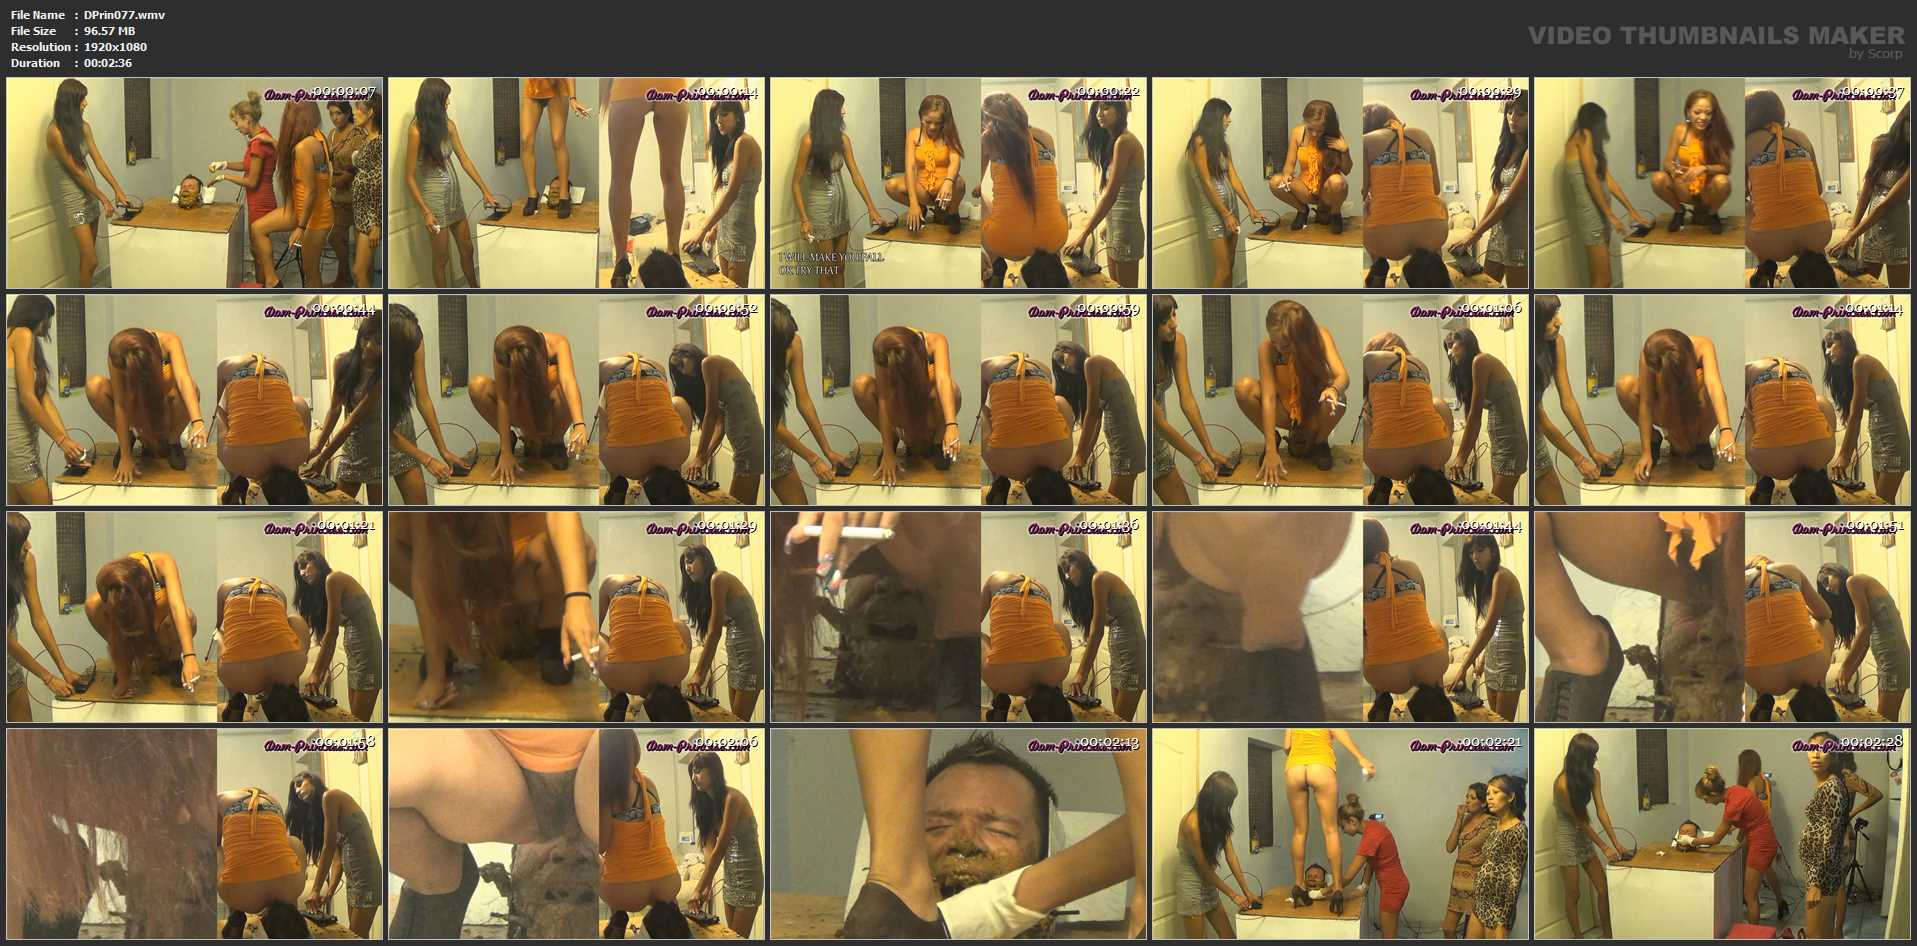 [DOM-PRINCESS] The Washing Machine Part 5 Karina [FULL HD][1080p][WMV]